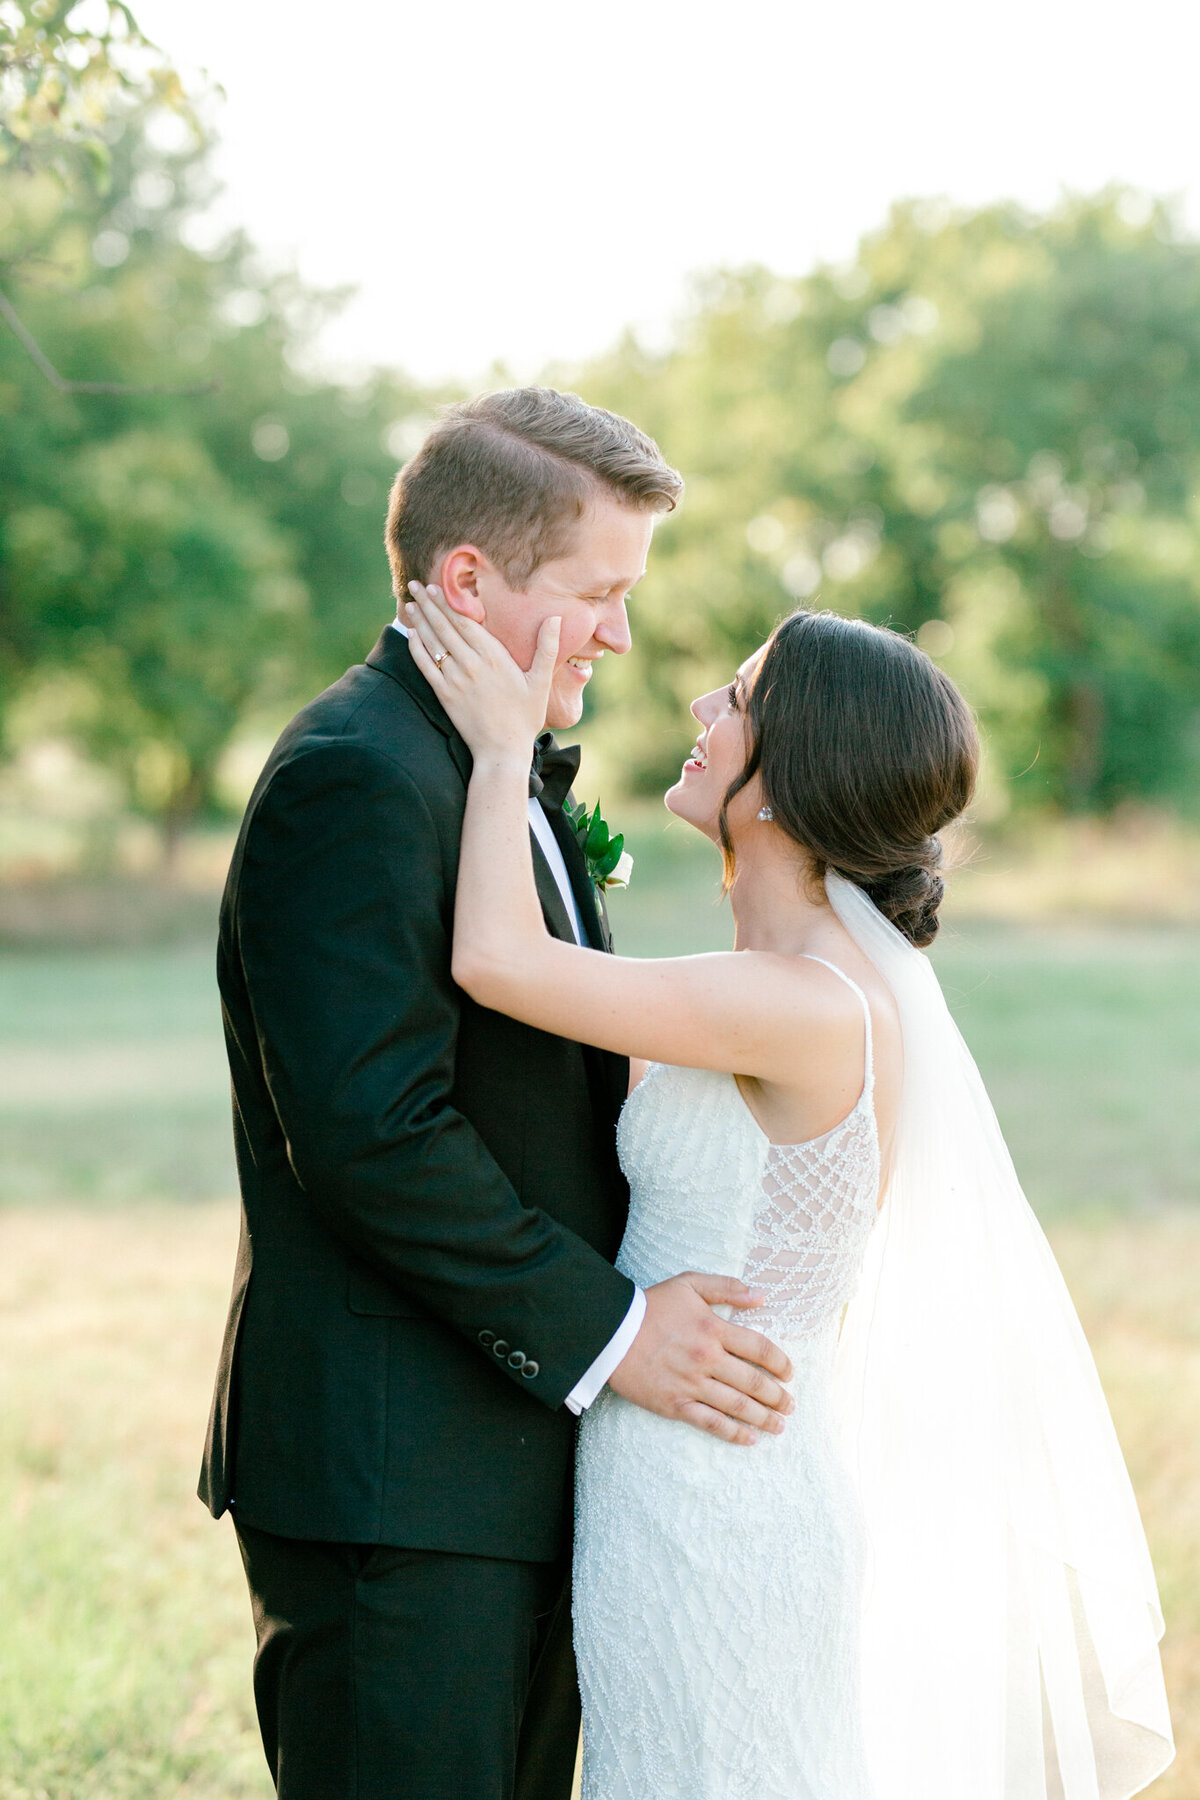 Anna & Billy's Wedding at The Nest at Ruth Farms | Dallas Wedding Photographer | Sami Kathryn Photography-170